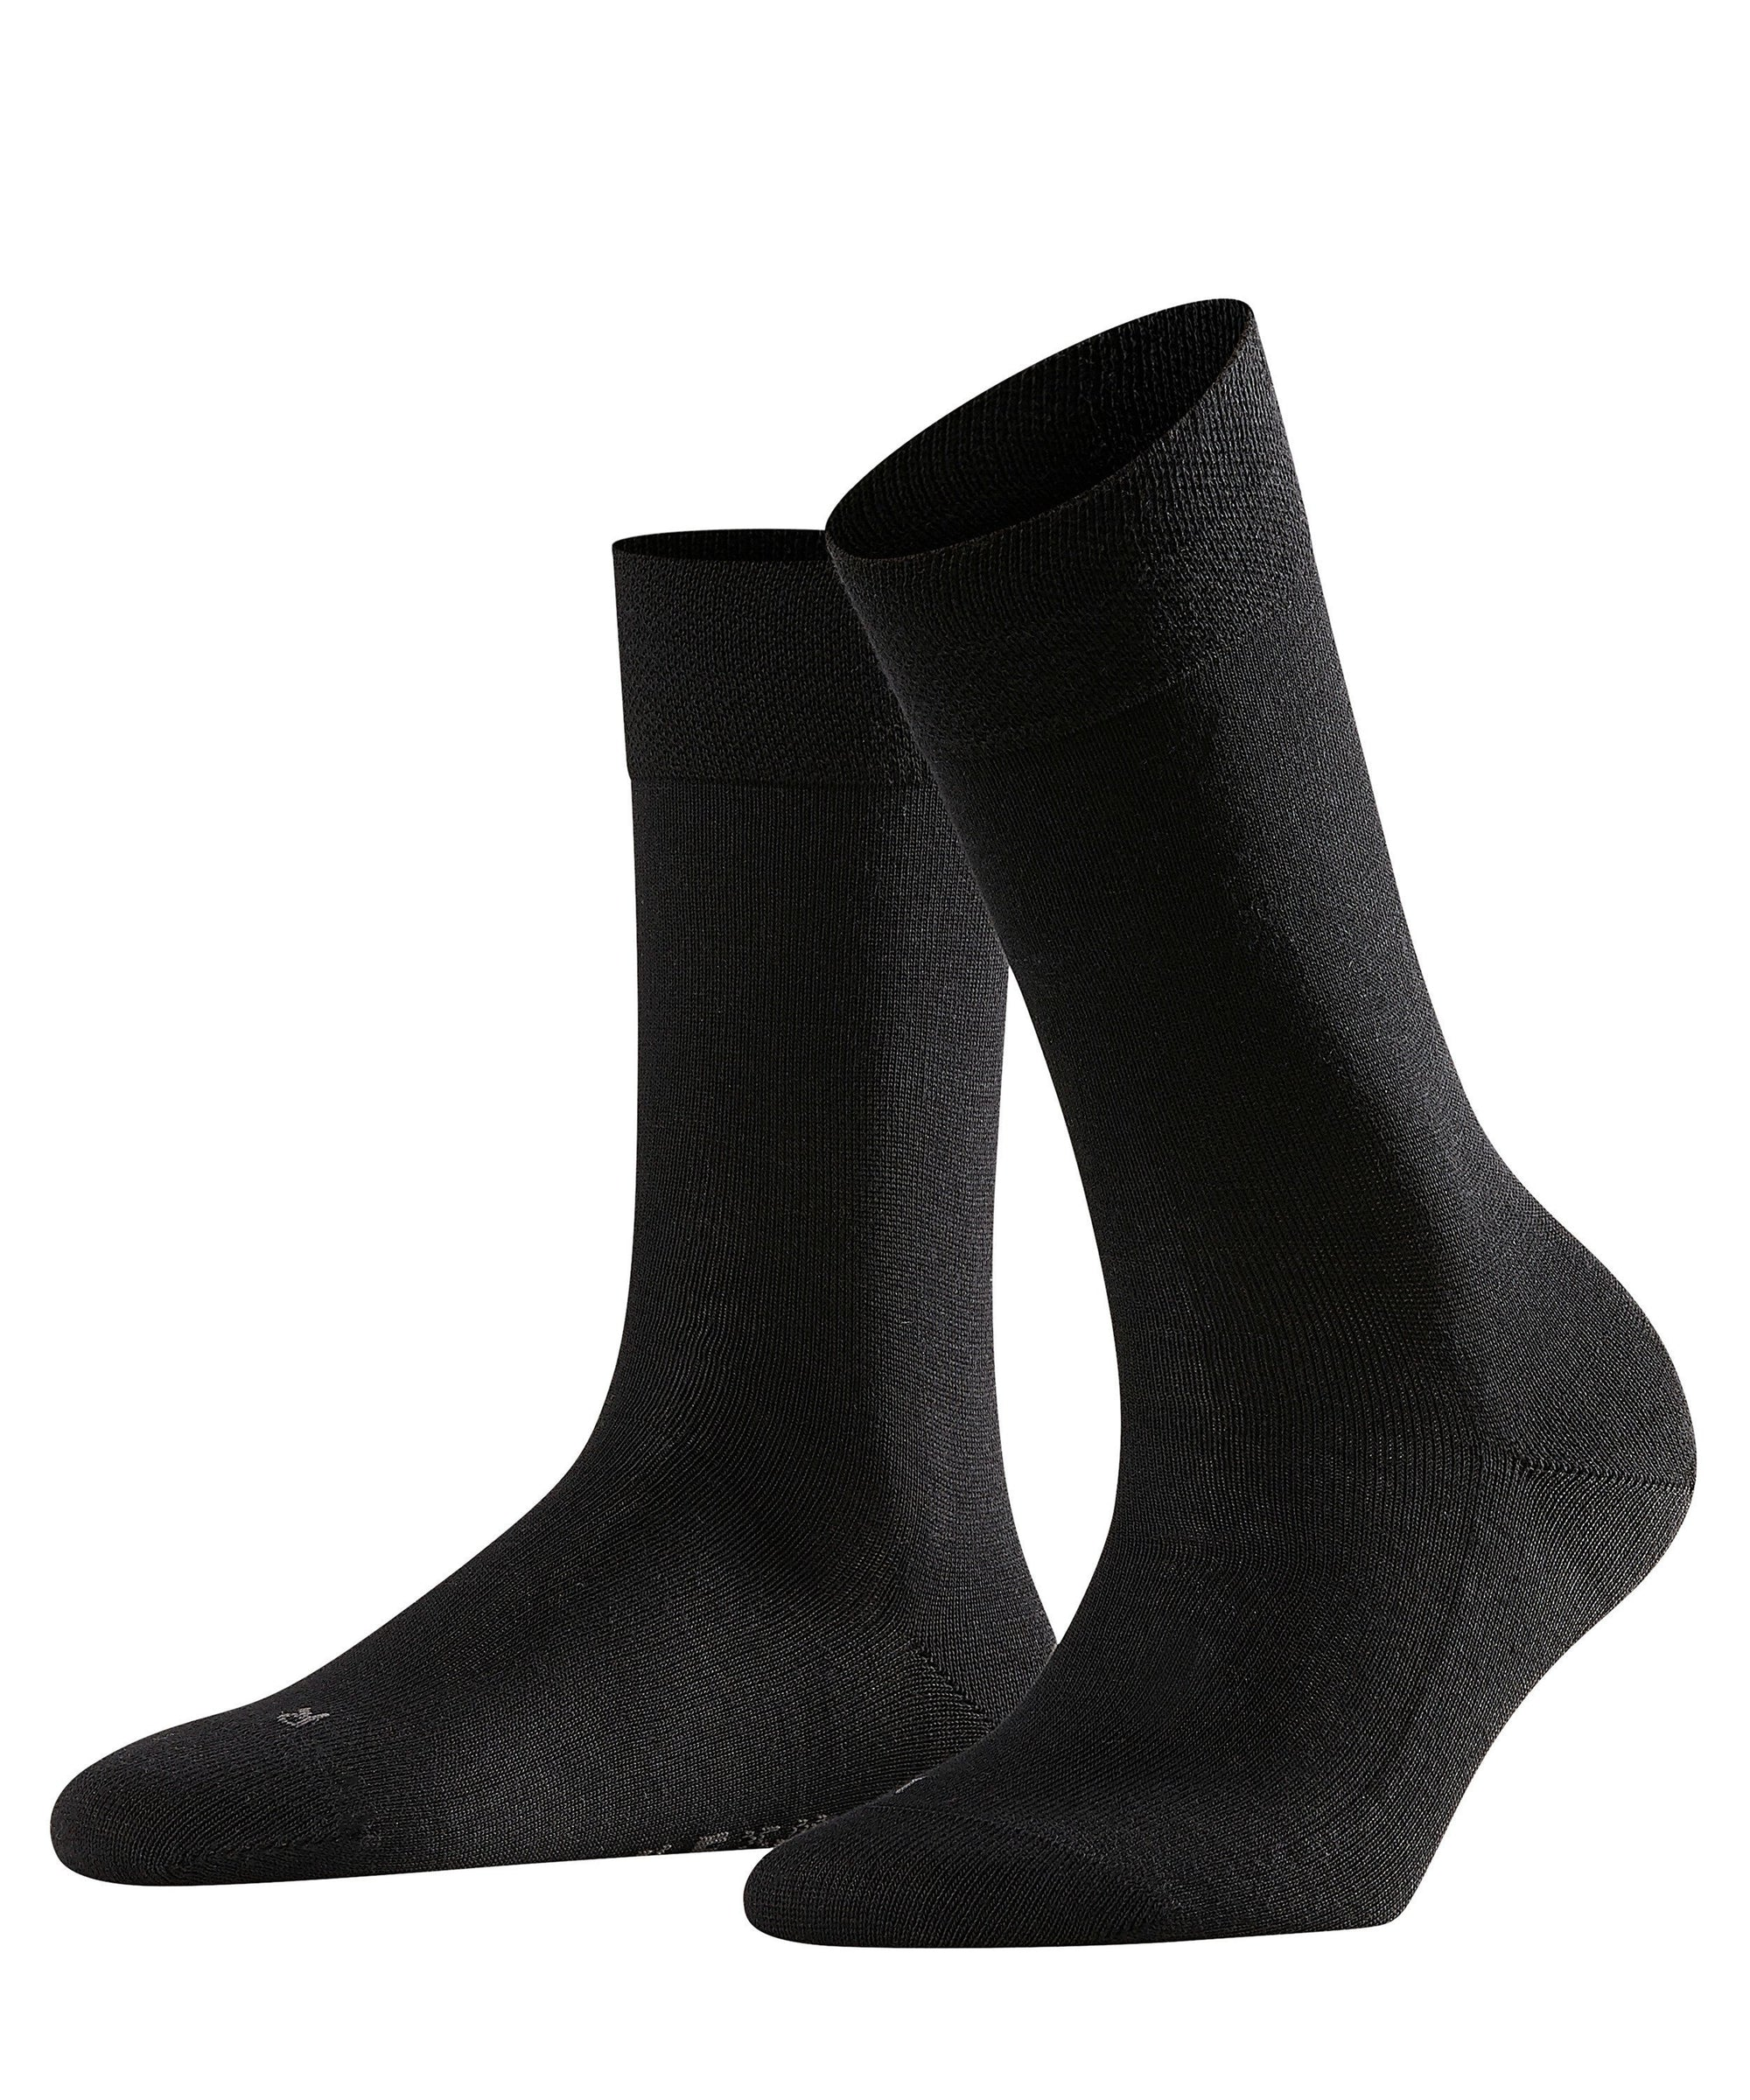 Falke Sensitive London Socks Black